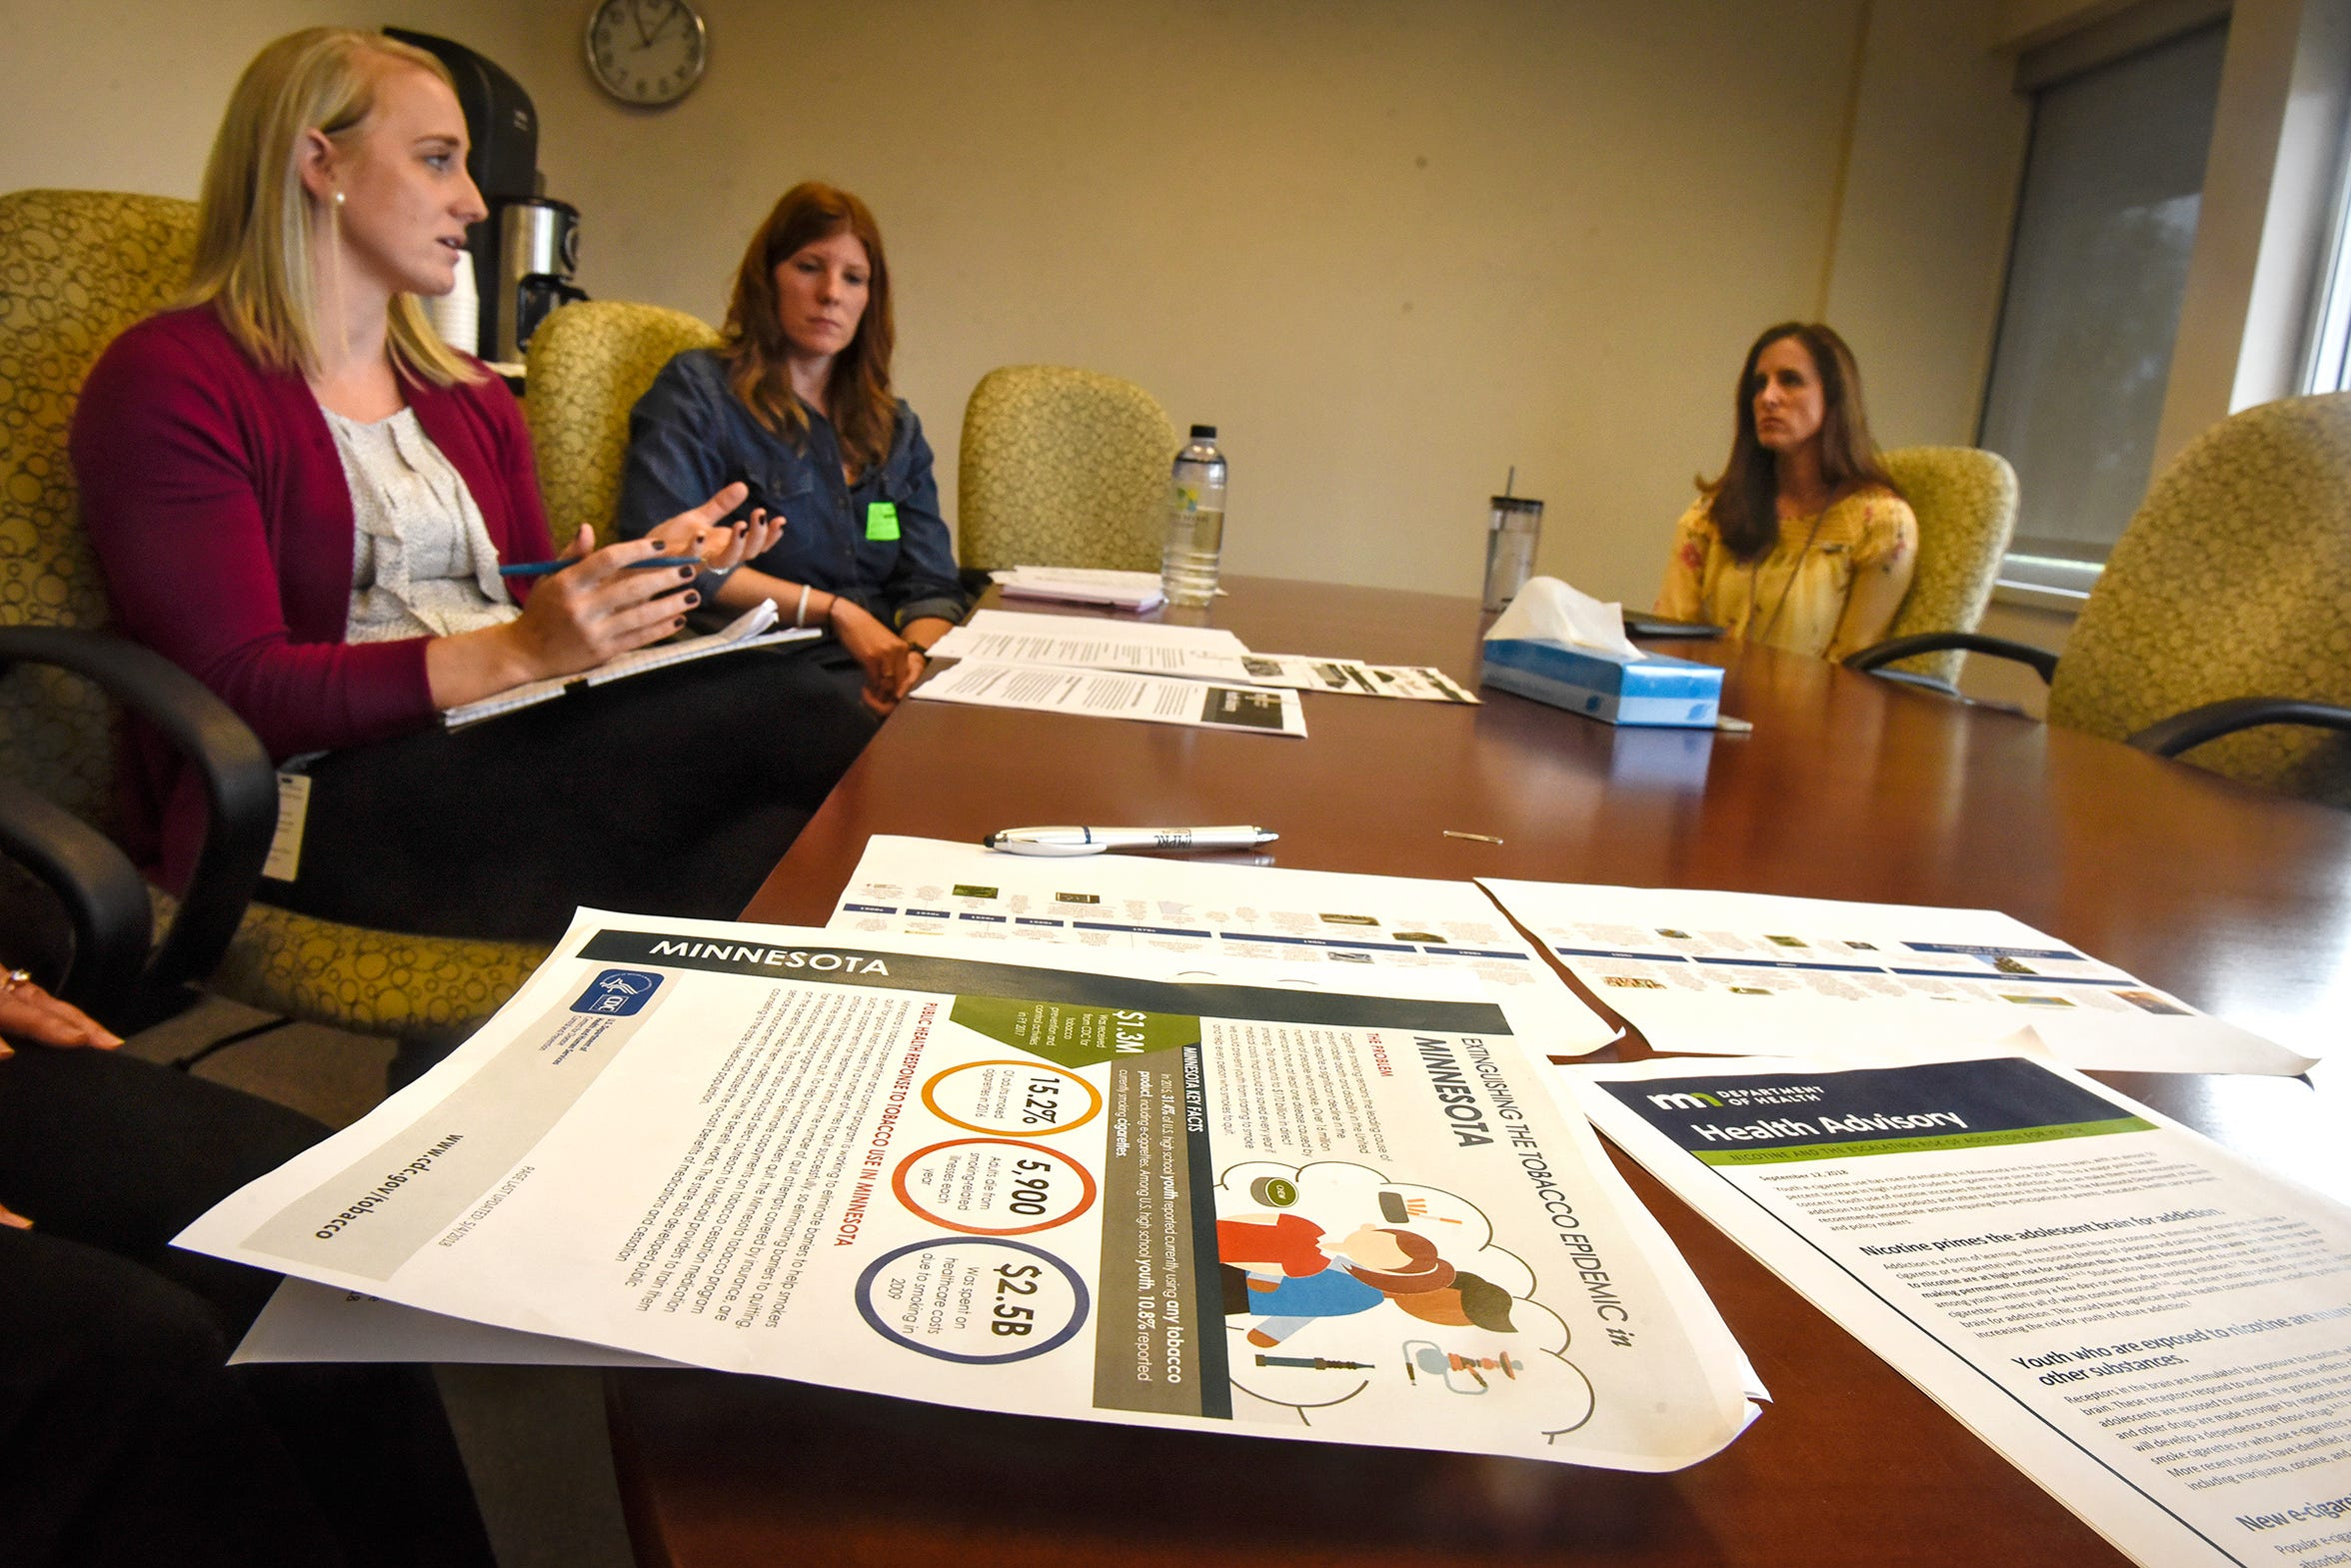 From right to left, Danielle Protivinsky, Jennifer Wald and Jennifer Kenning talk about the dangers of vaping by teenagers during an interview Thursday, Sept. 25, in Sauk Rapids.